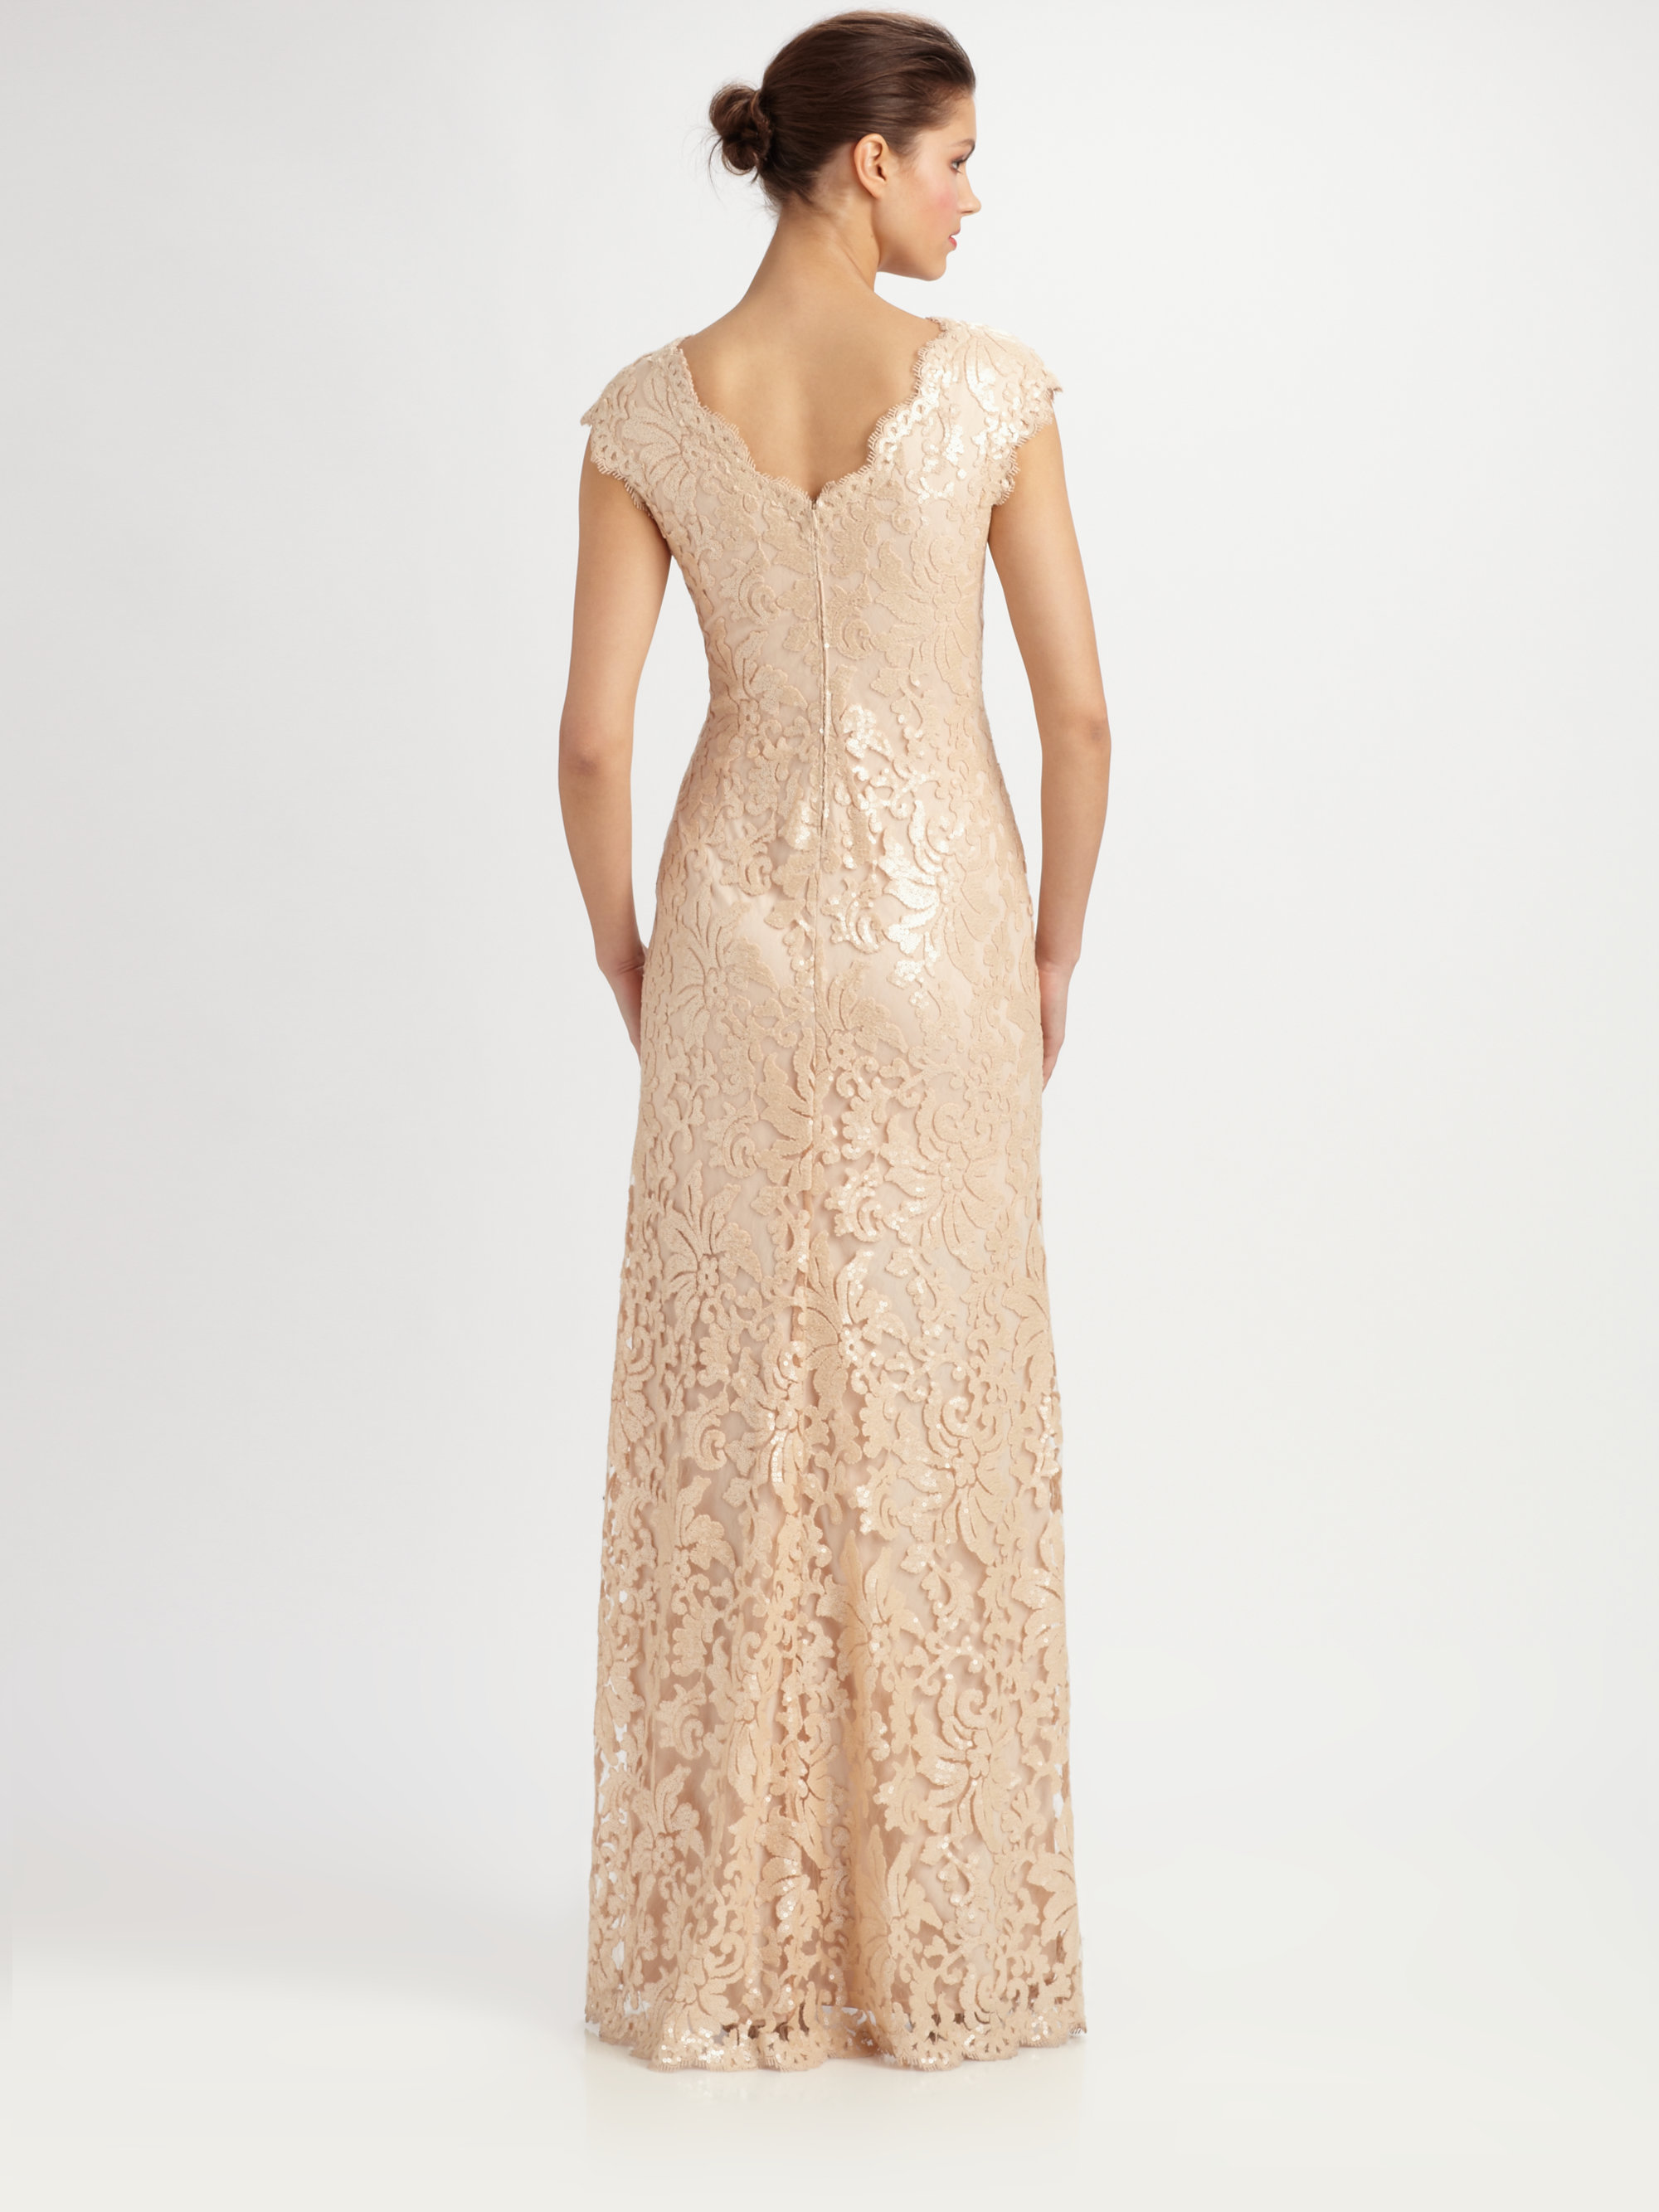 Lyst - Tadashi Shoji Sequined Lace Gown in Natural